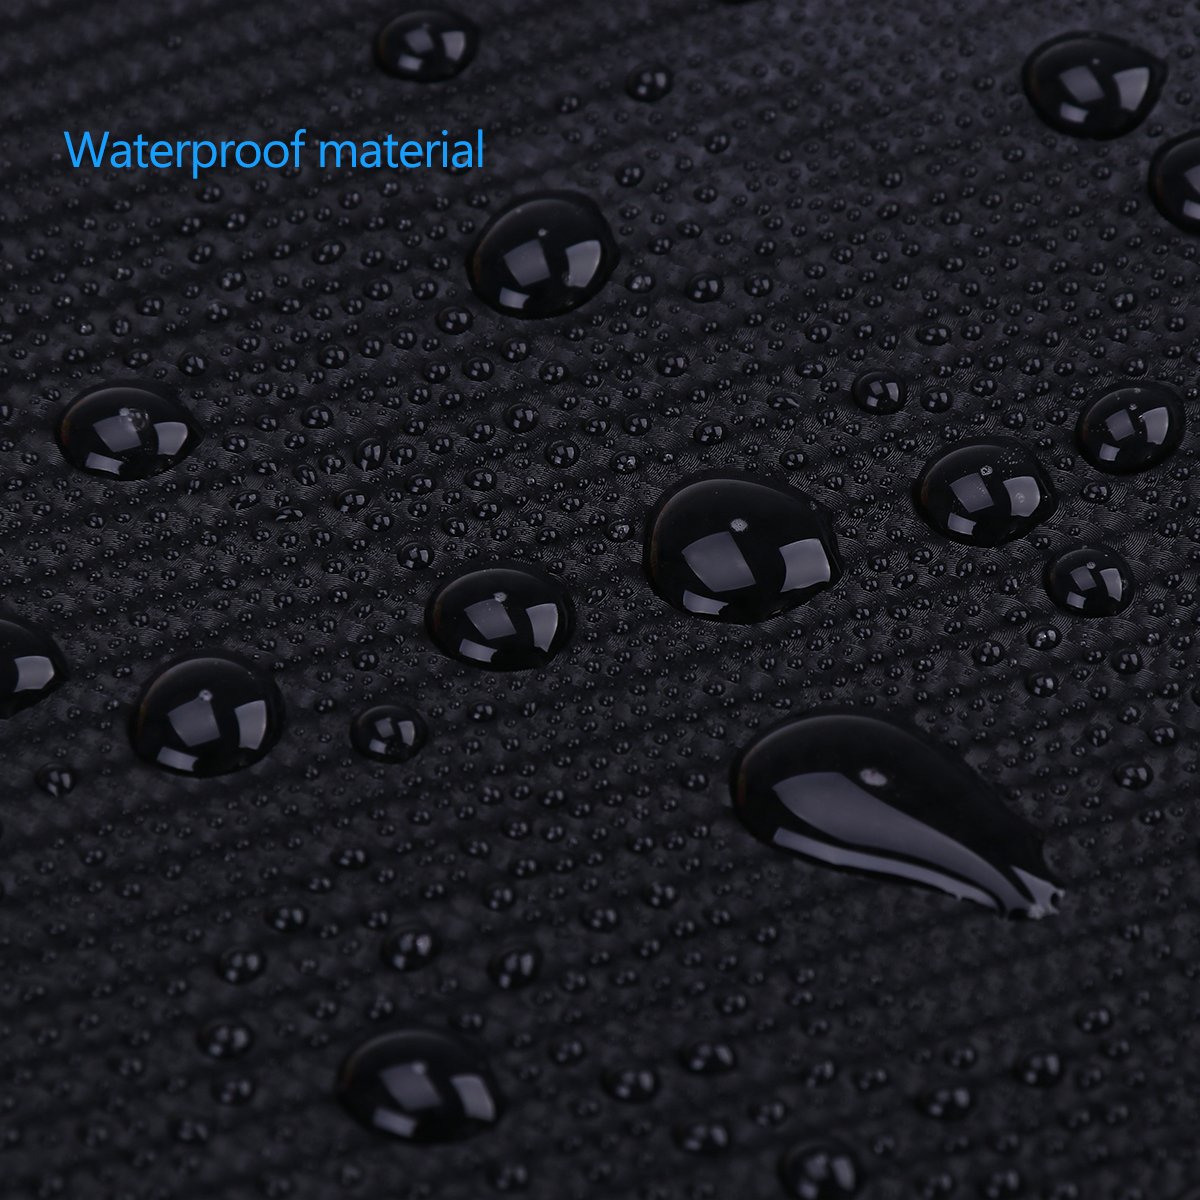 WINOMO 4D Black Carbon Fiber Film Wrap Roll Self-adhesive DIY Sticker Sheet for Car Motorcycle Bicycle 118x11.8 inch